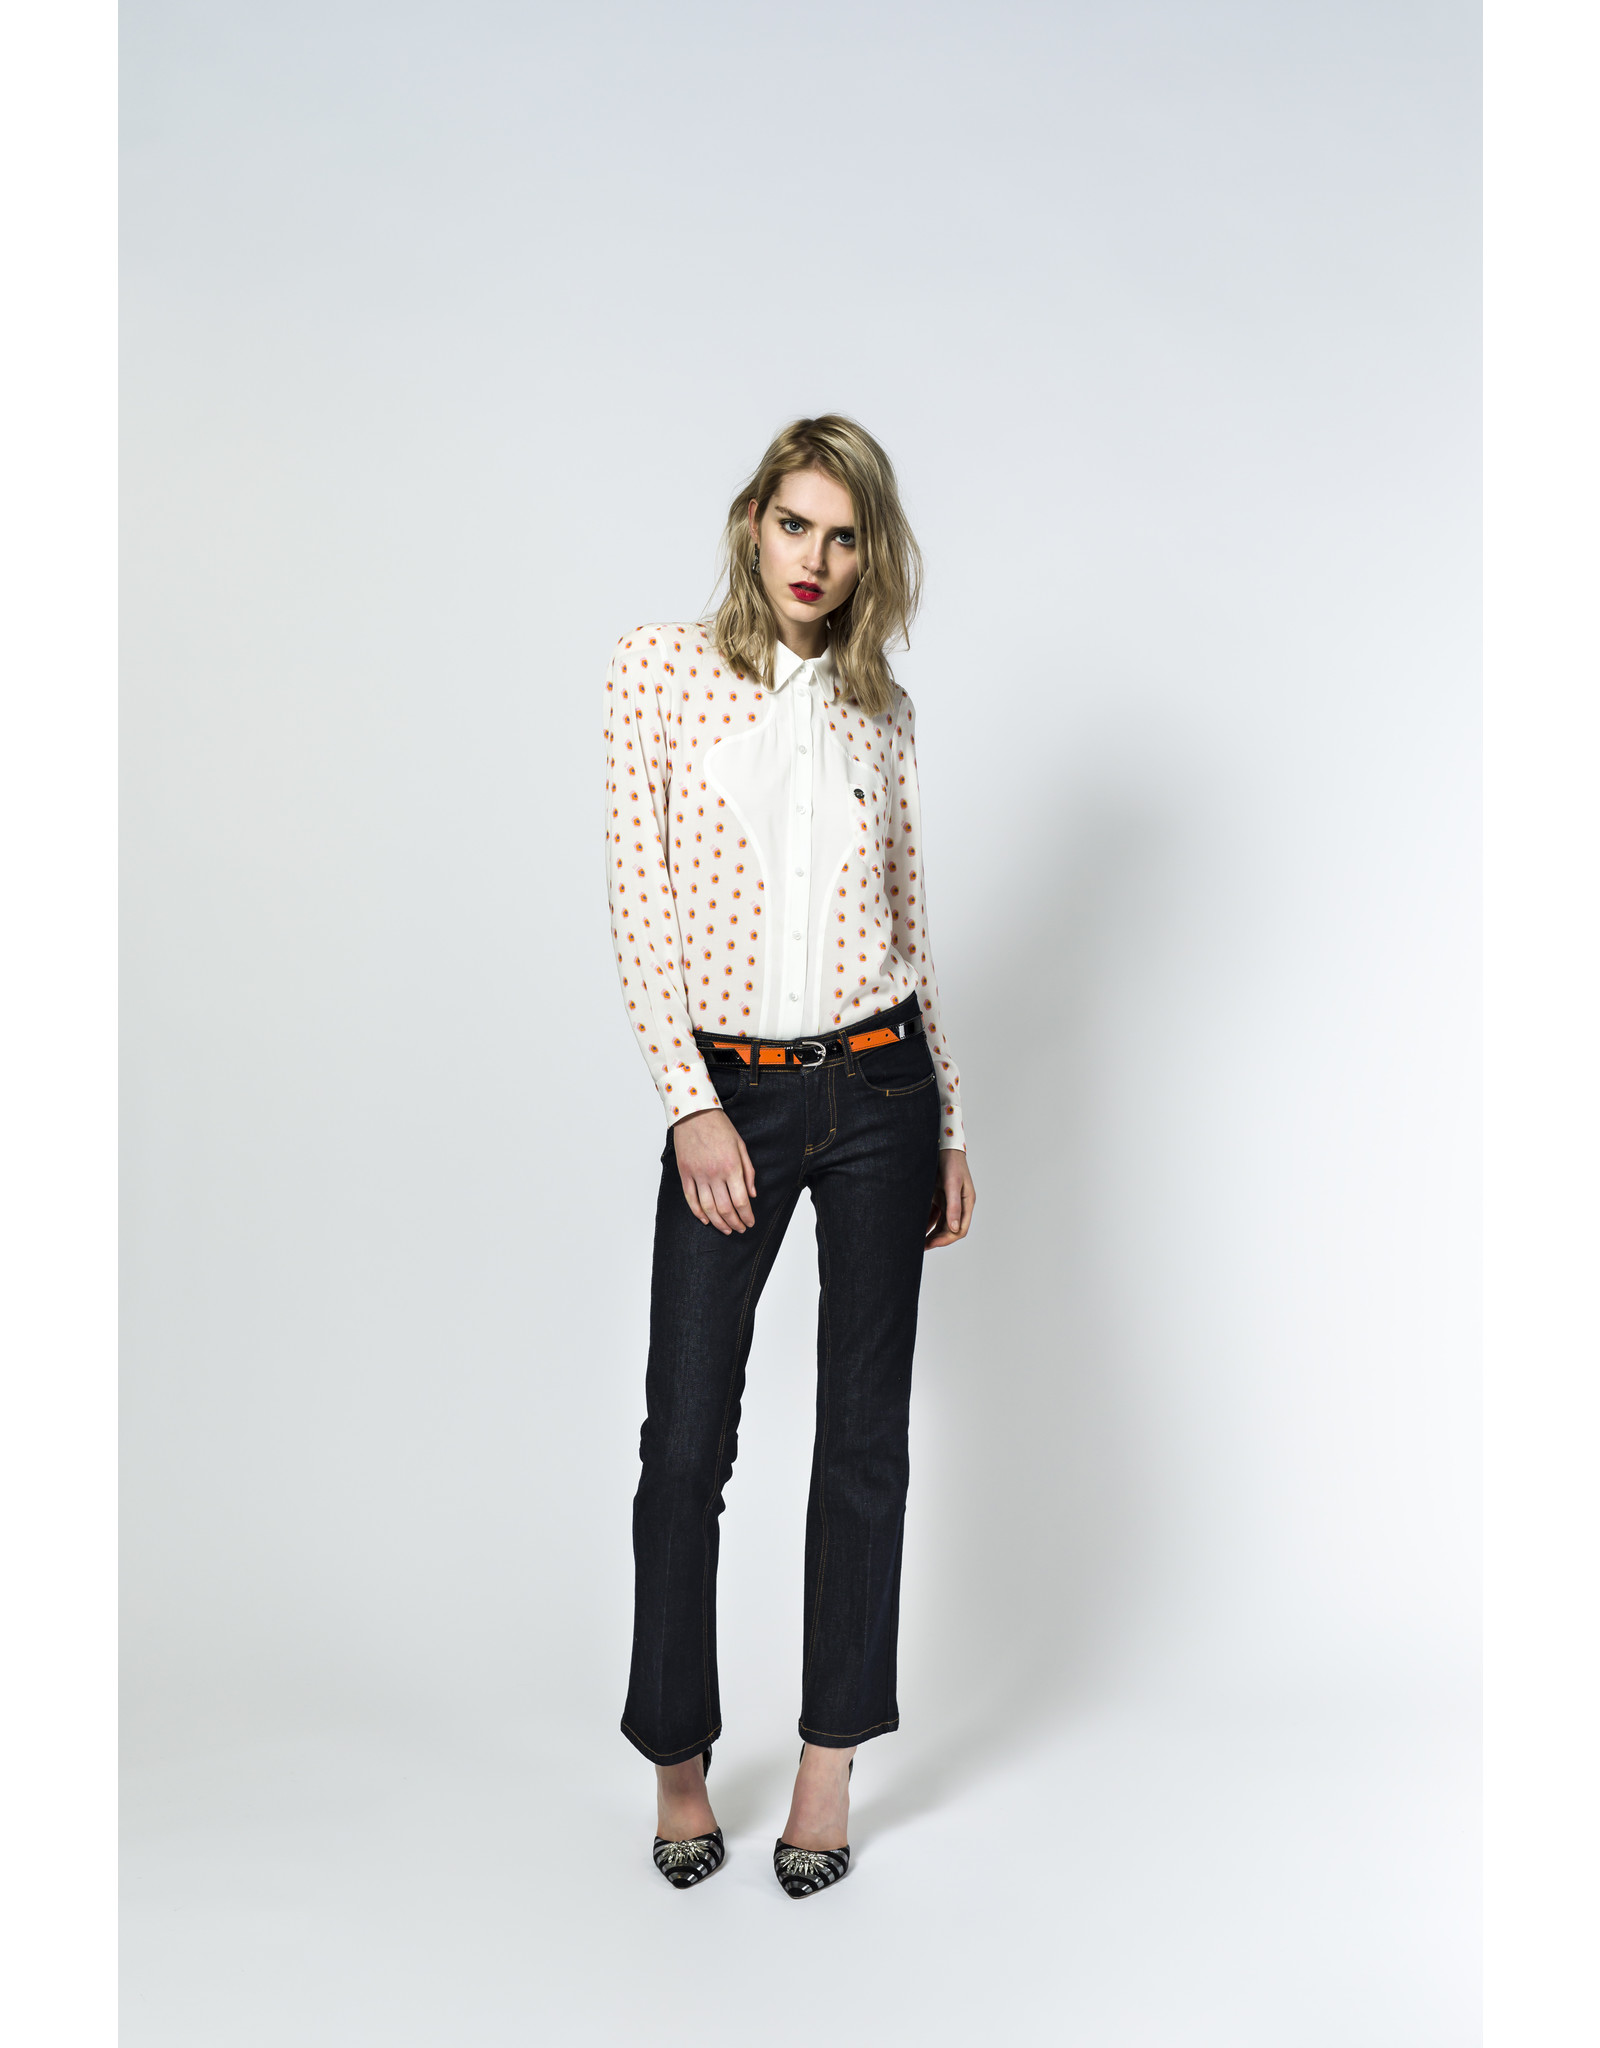 AW2021 121-B Hourglass Blouse